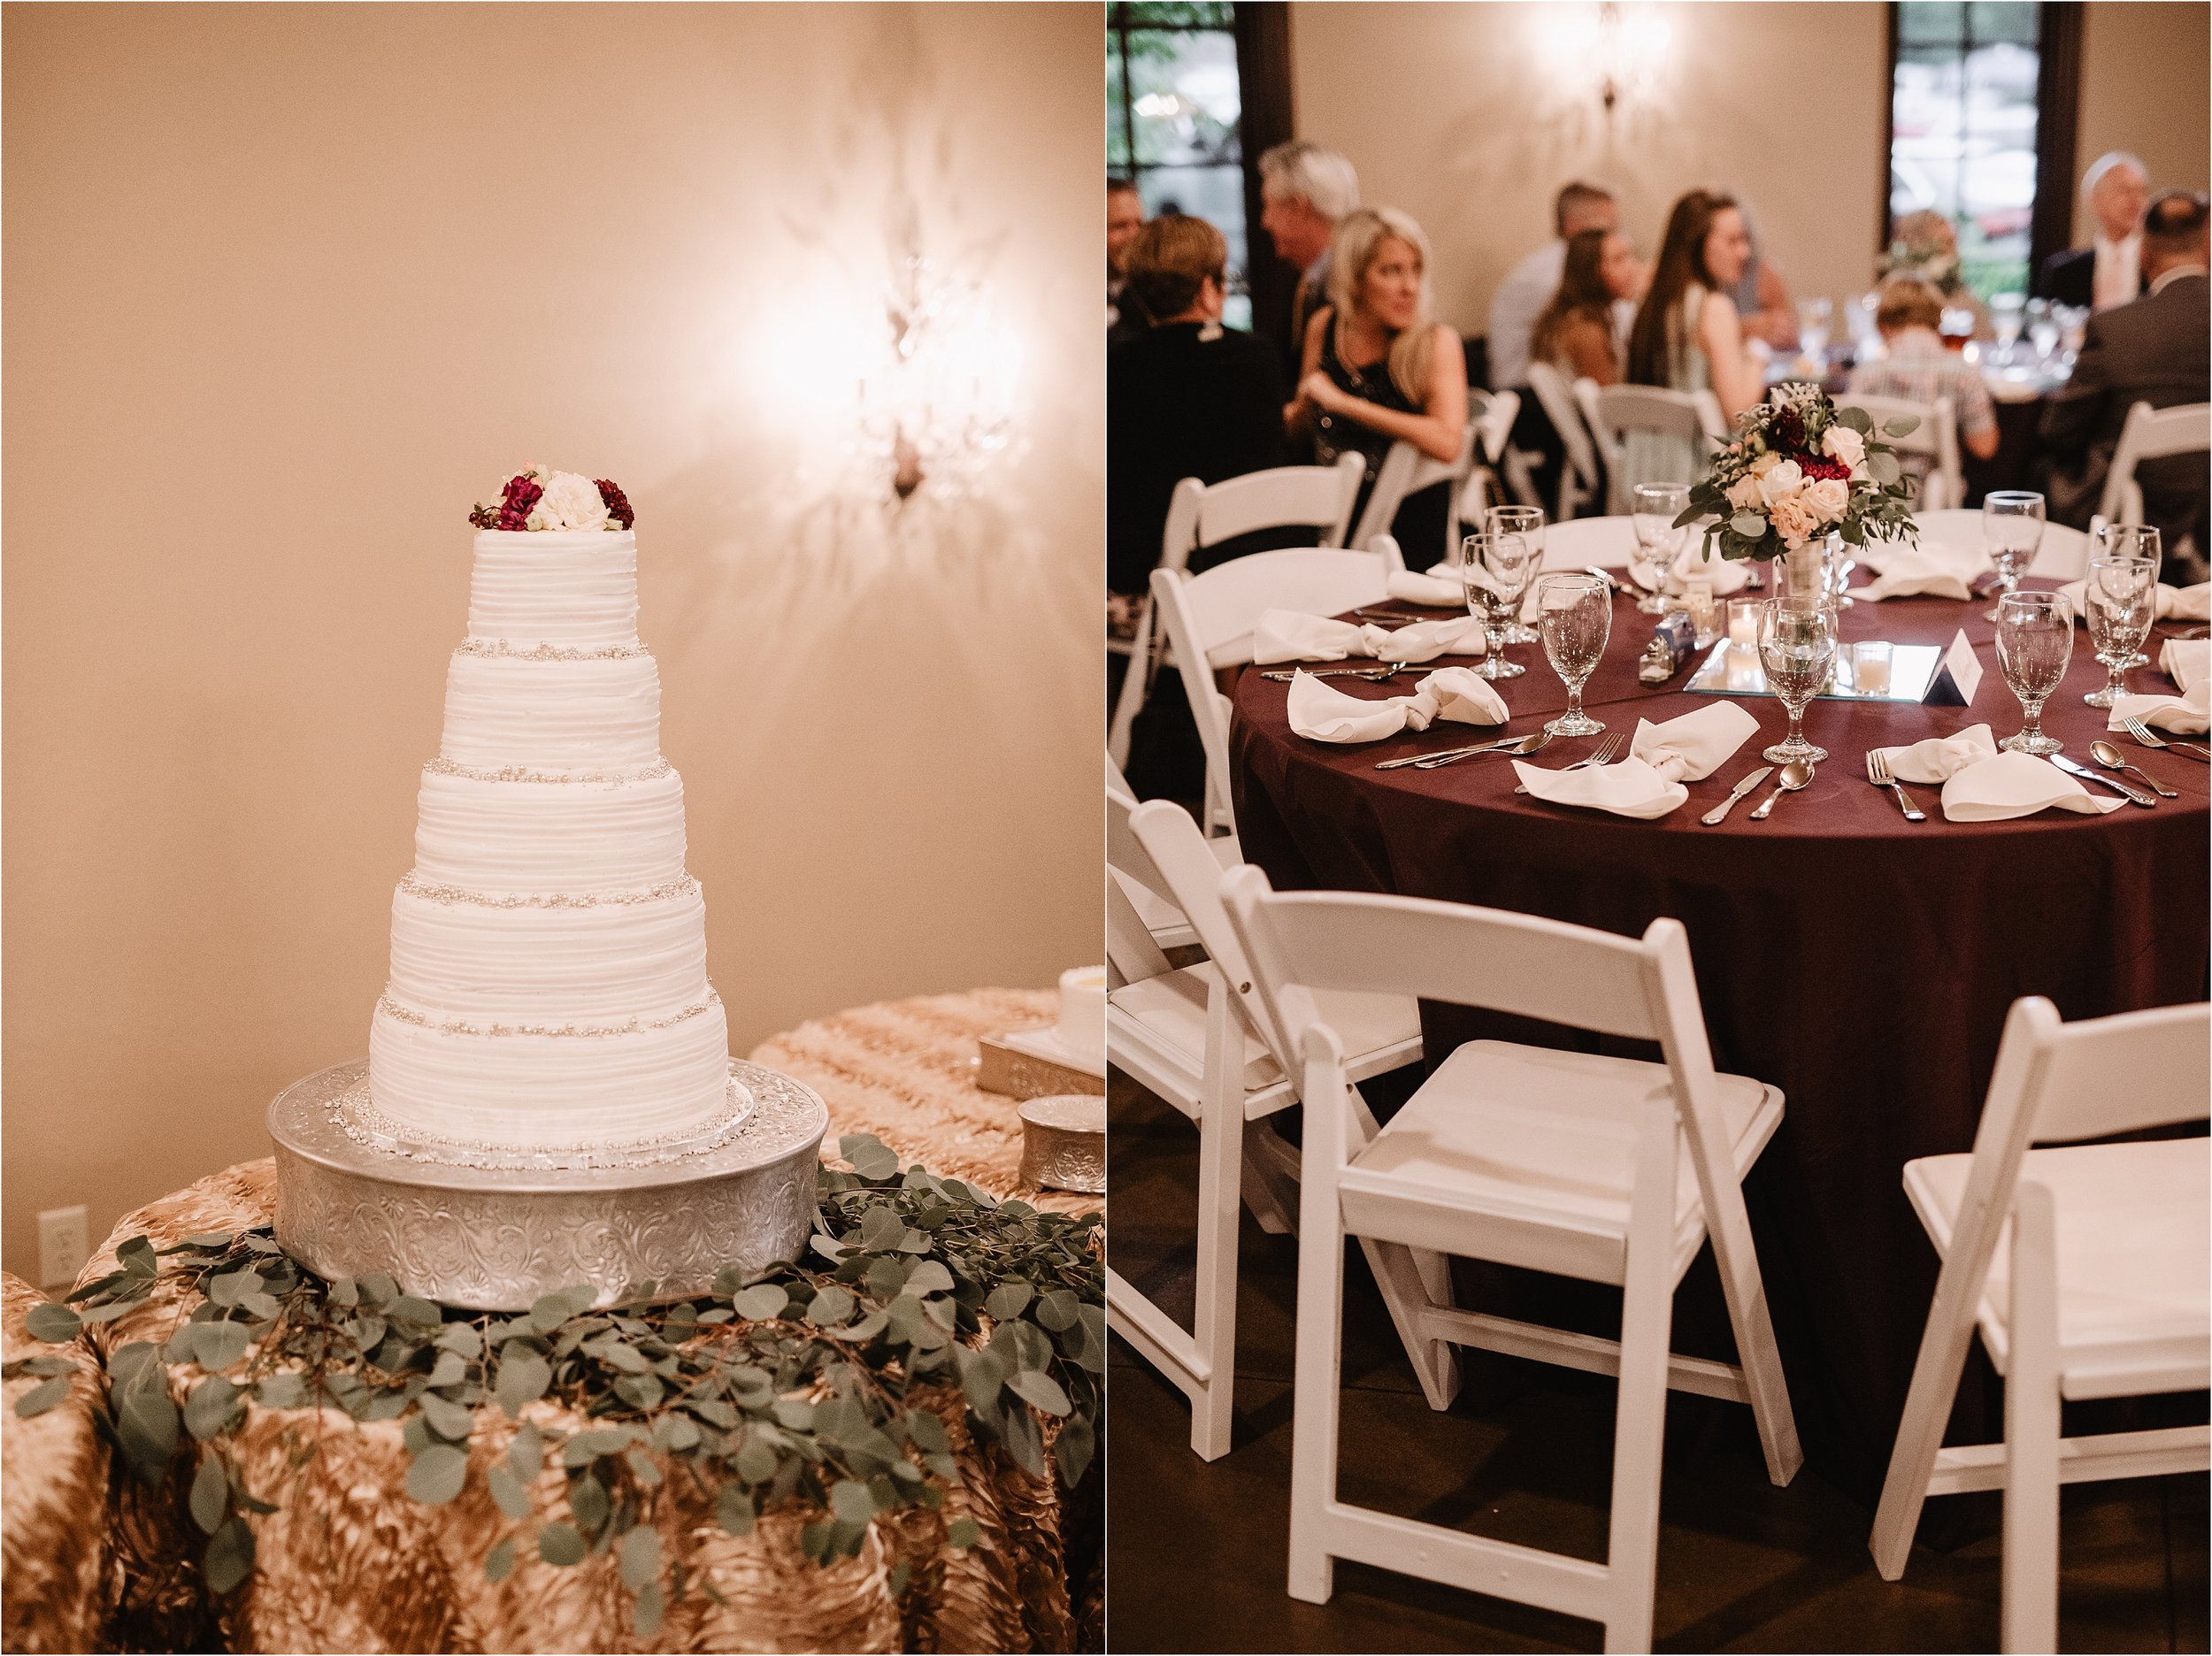 Vesica Piscis Chapel, Oklahoma Wedding, Regan and Brock Hime-43.jpg